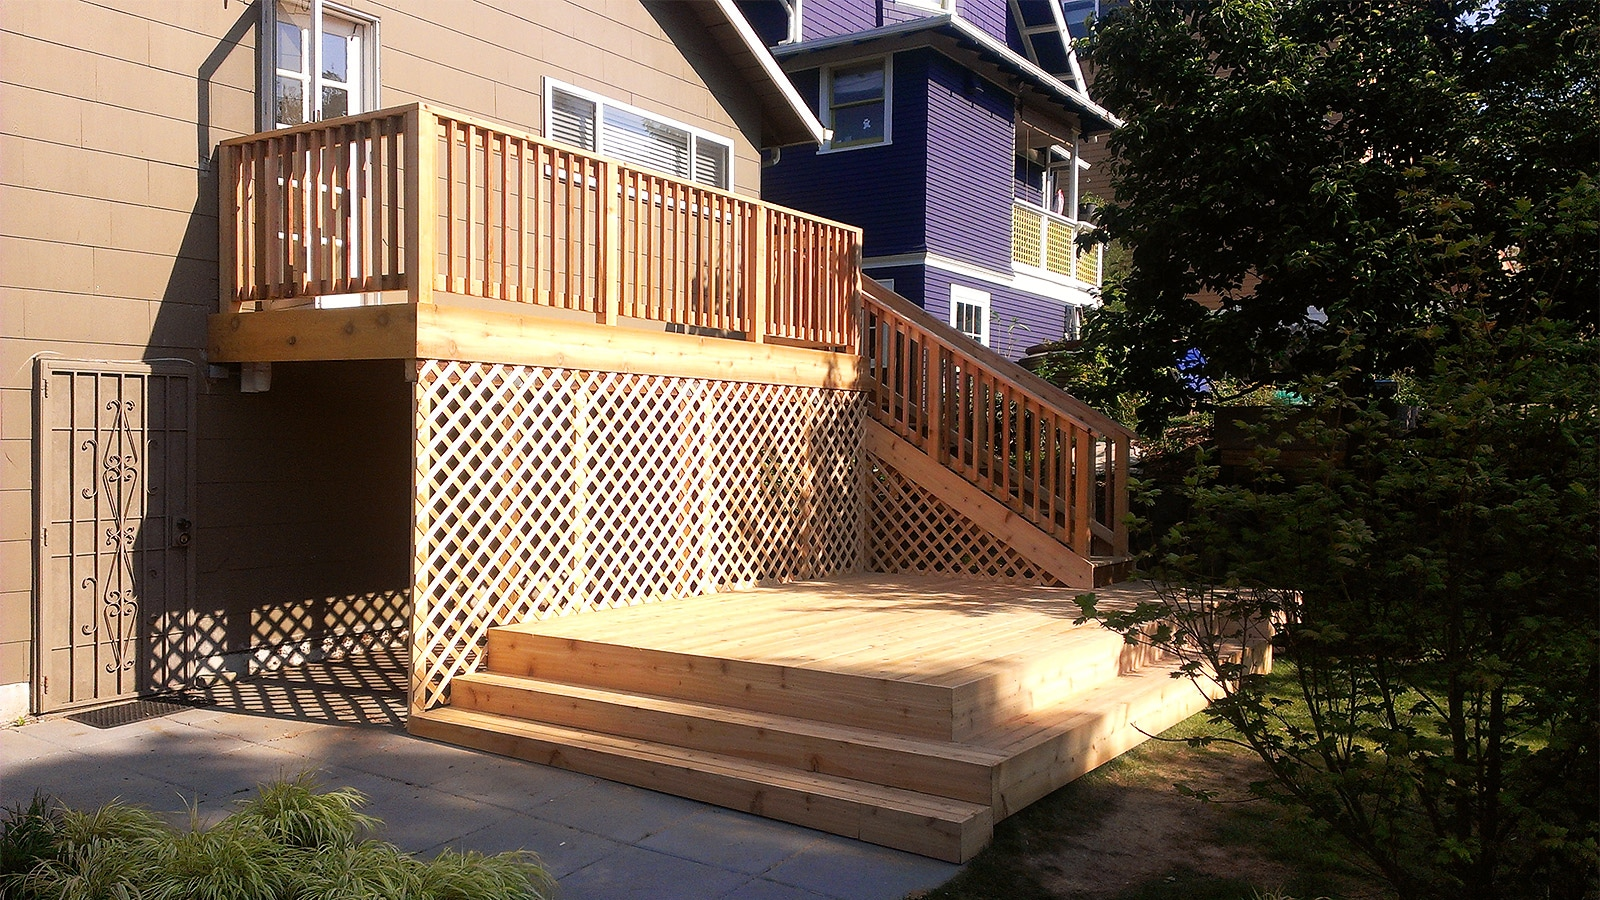 Two Level Cedar Deck with Stairs and Lattice